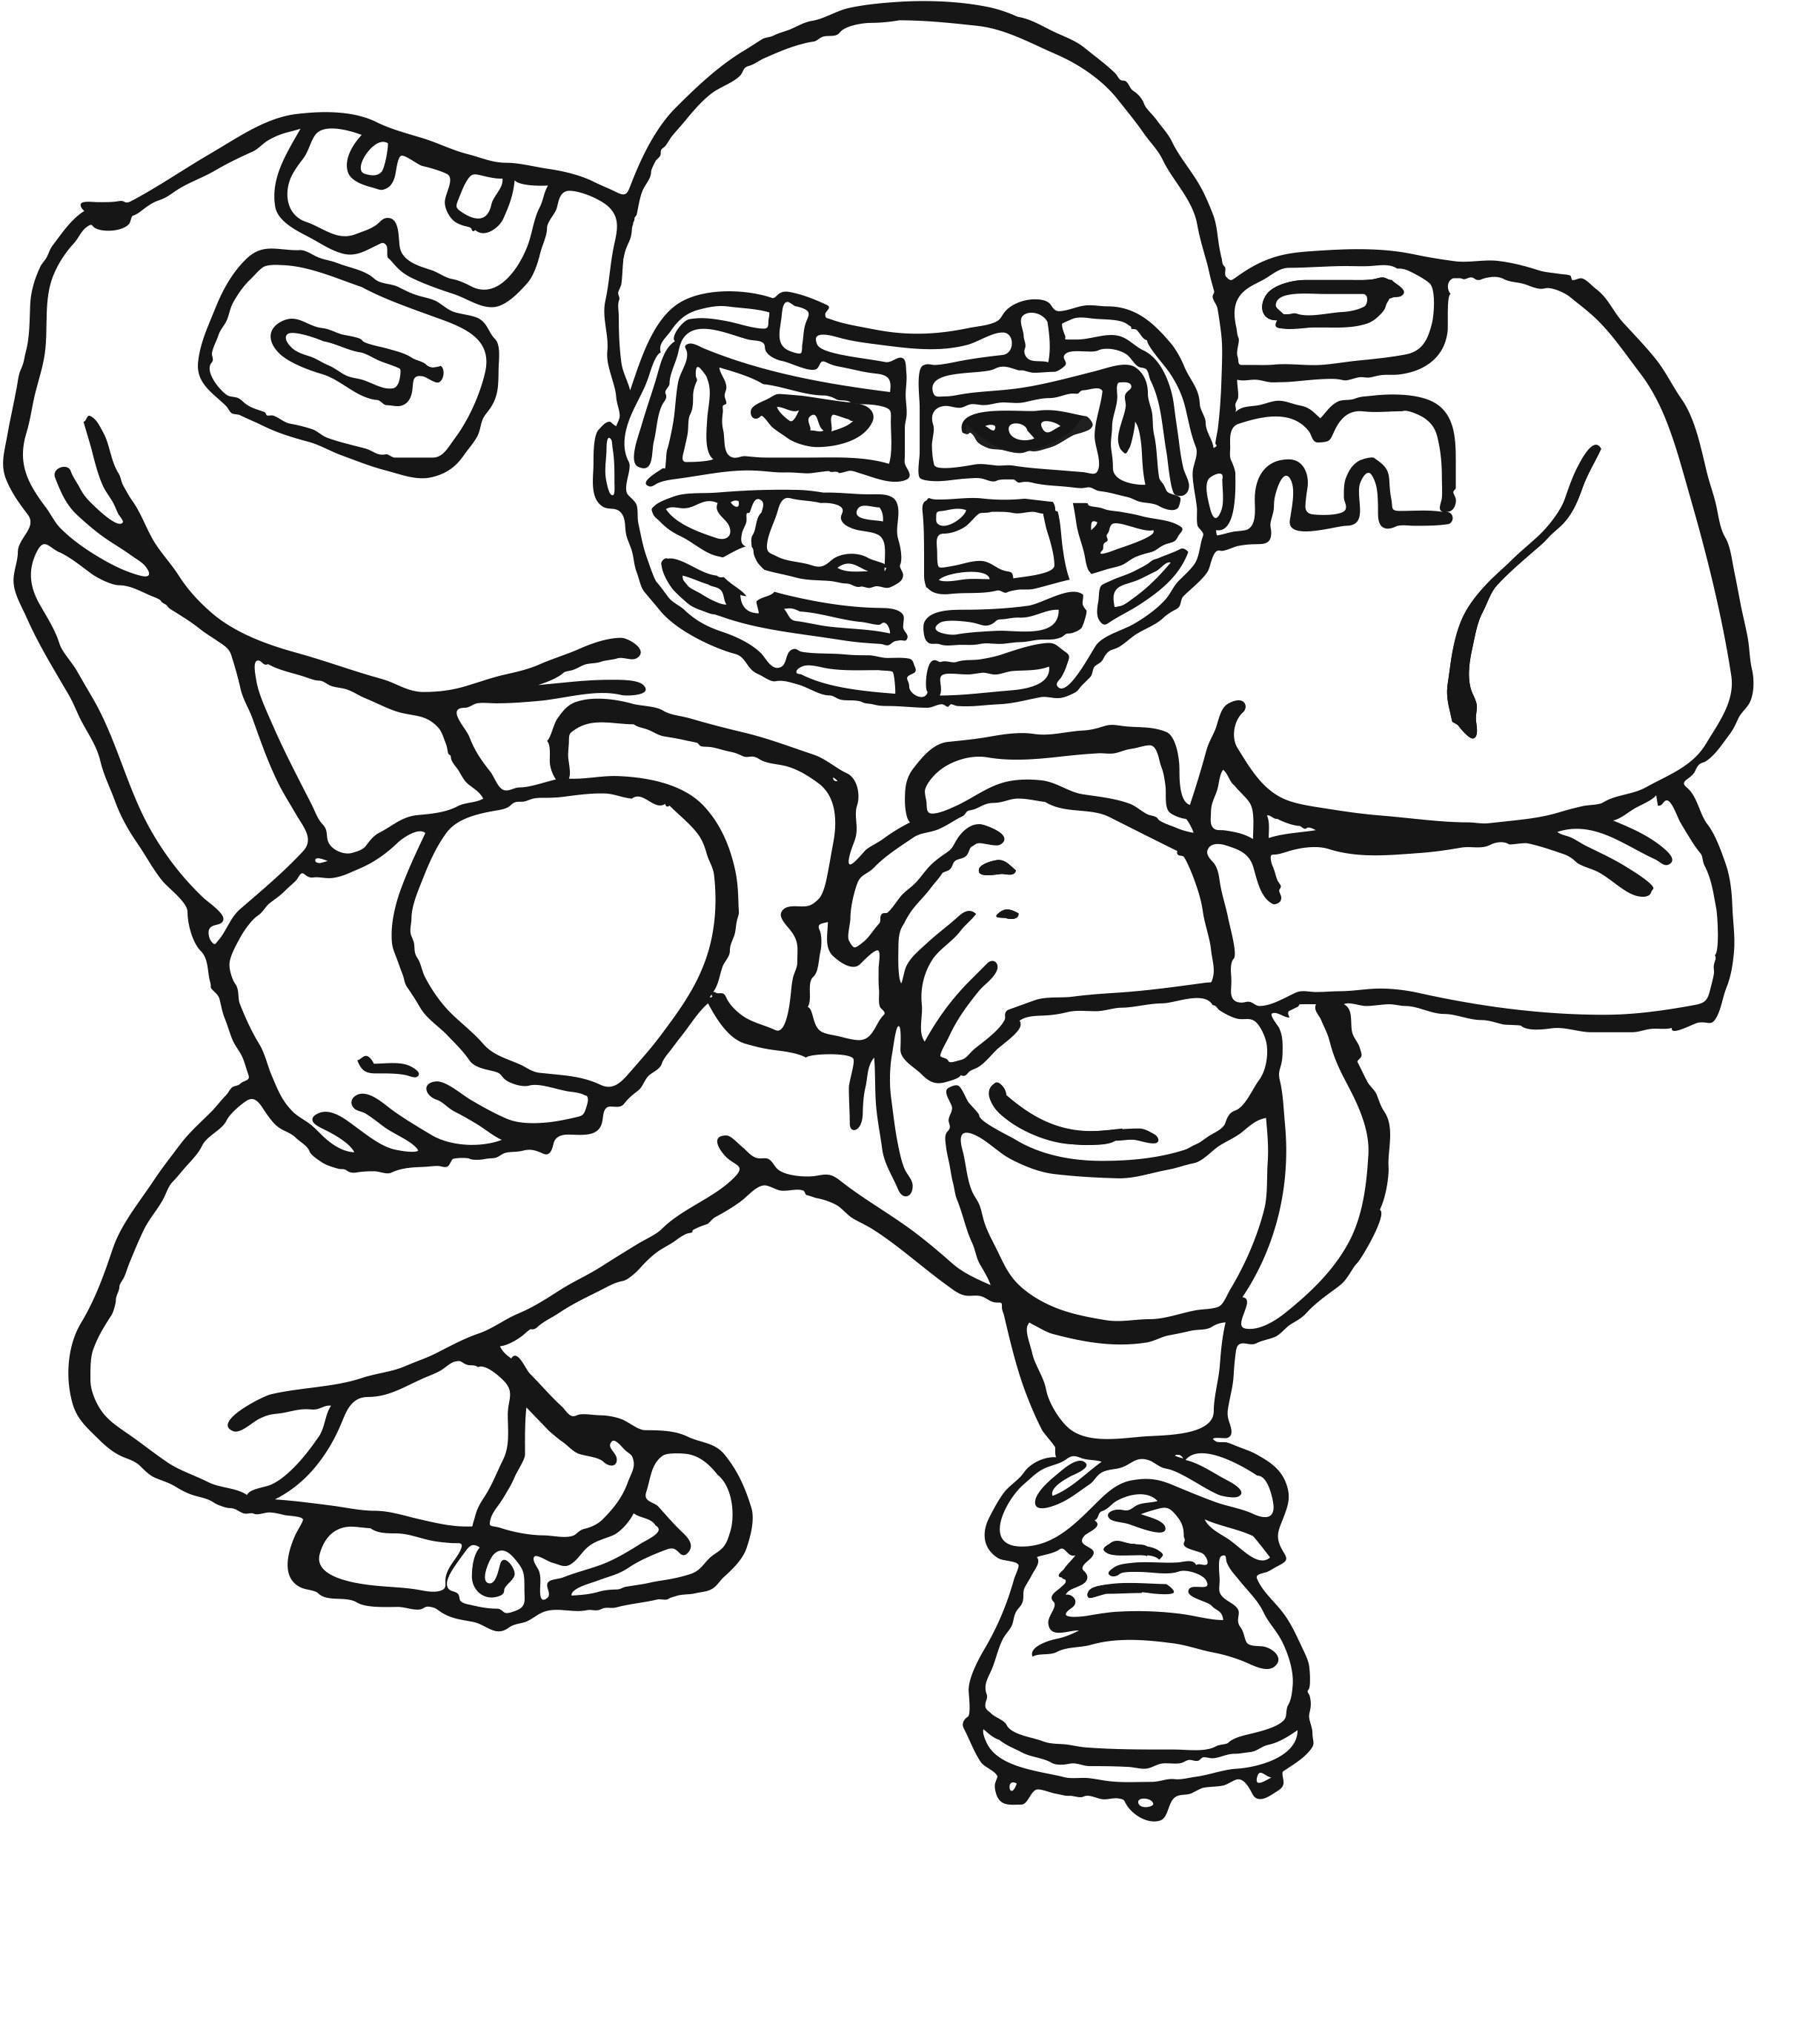 New England Patriots Coloring Pages At Getcolorings